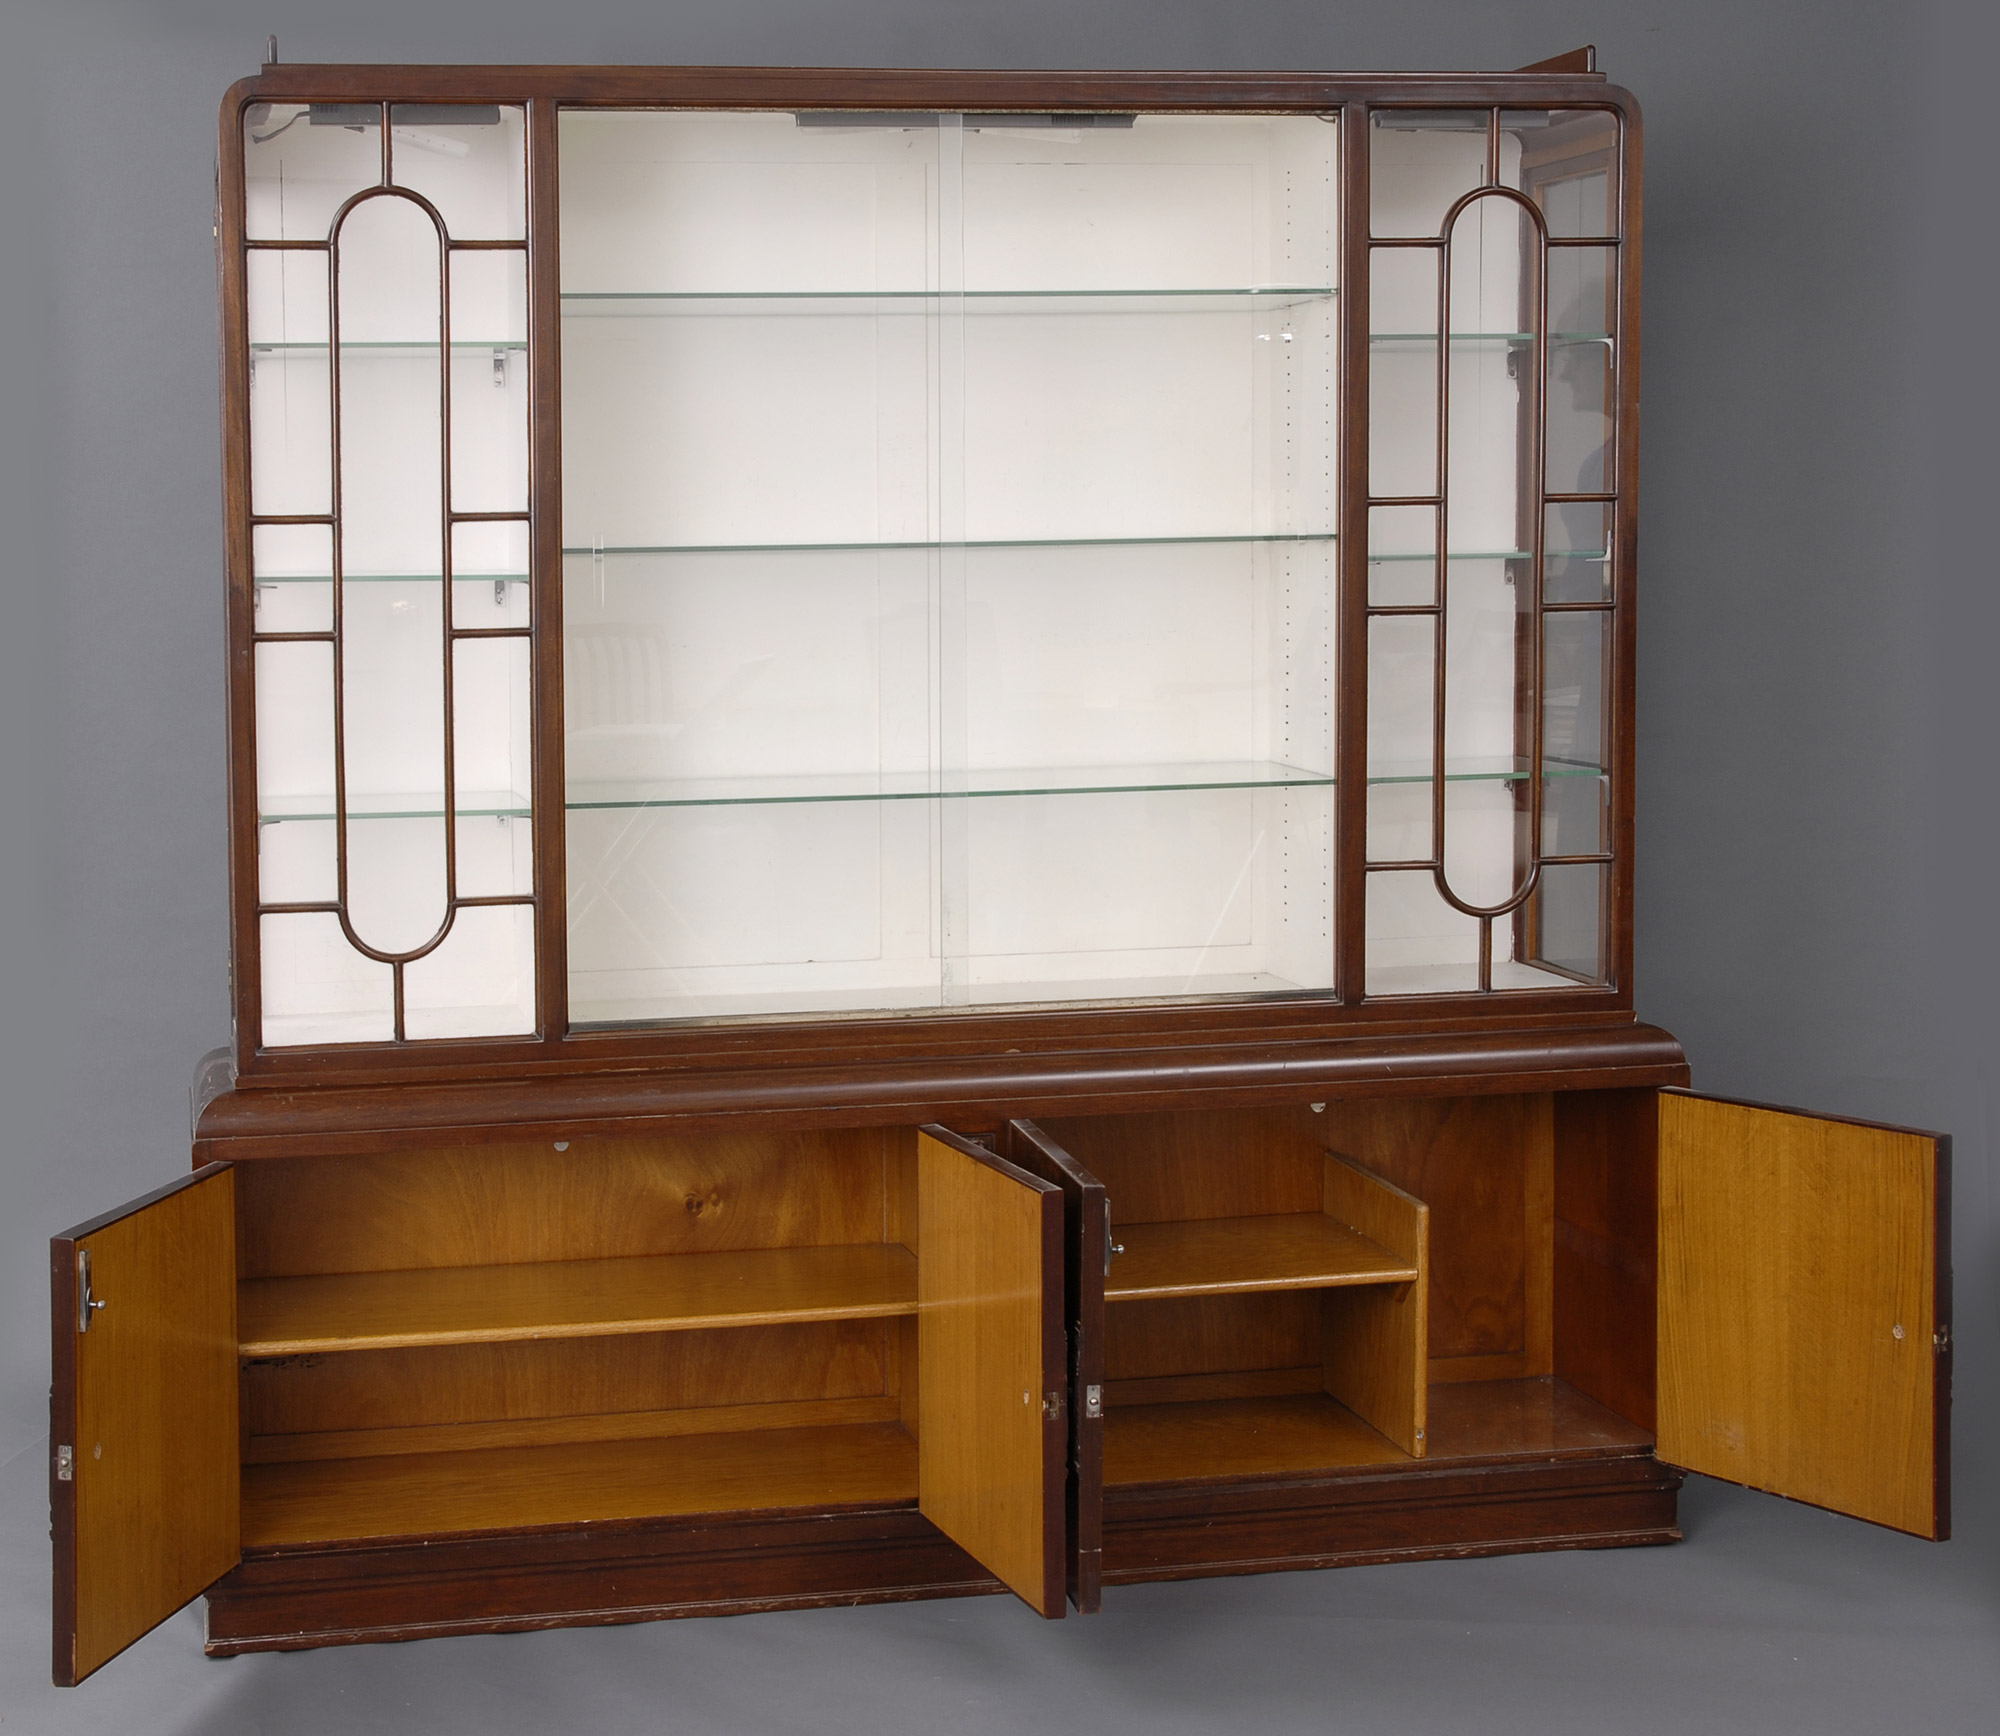 187 Product 187 Art Deco Display Cabinet